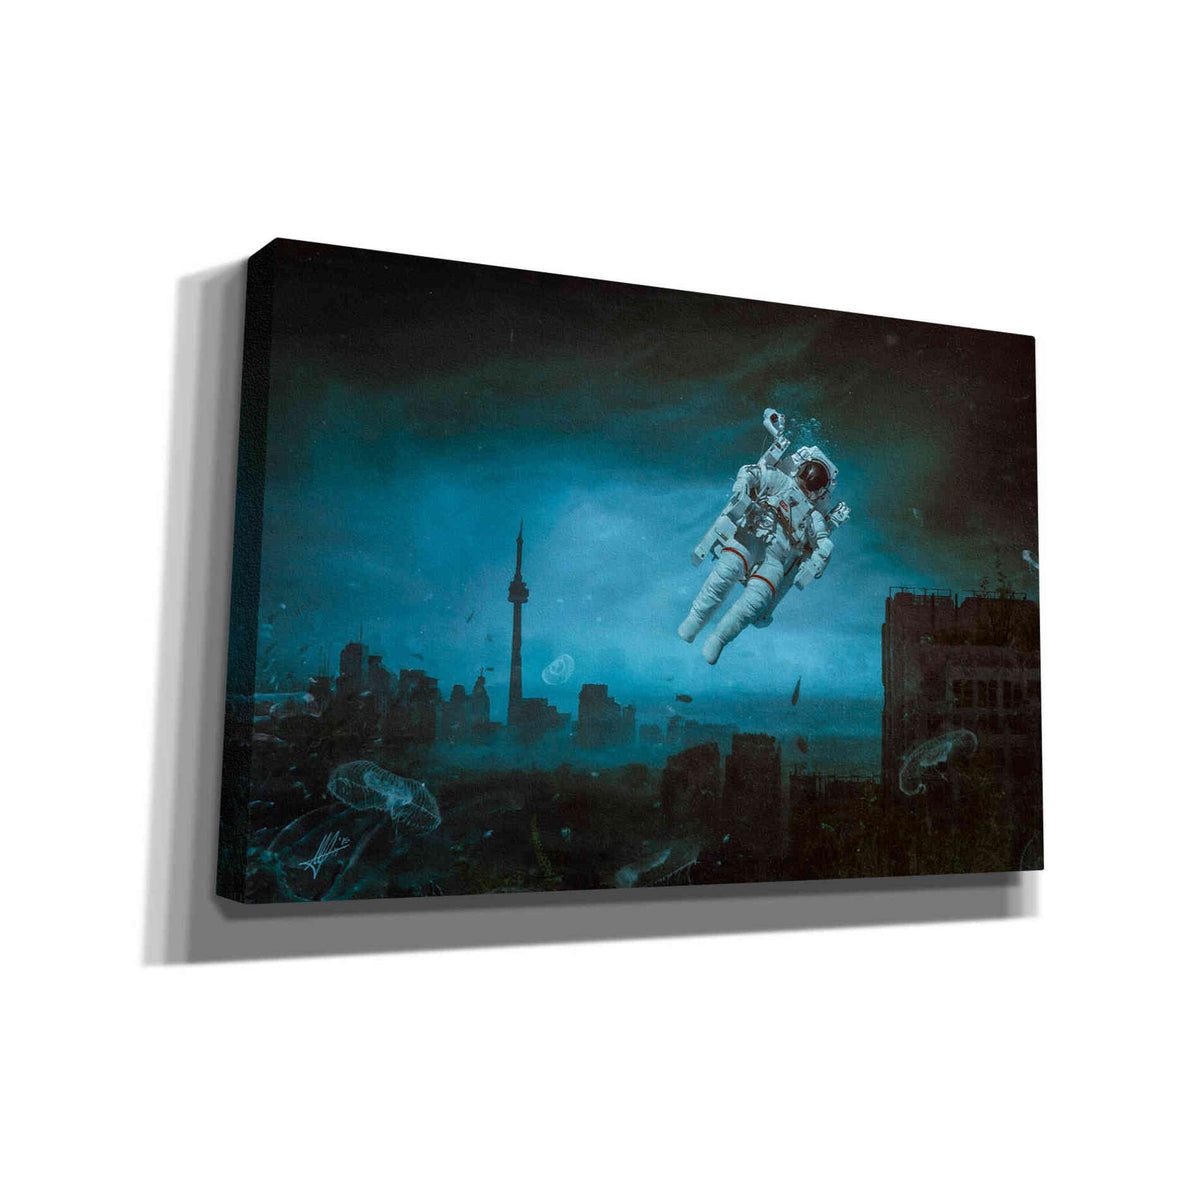 Cortesi Home 'Sometimes' by Mario Sanchez Nevado, Canvas Wall Art,Size A Landscape